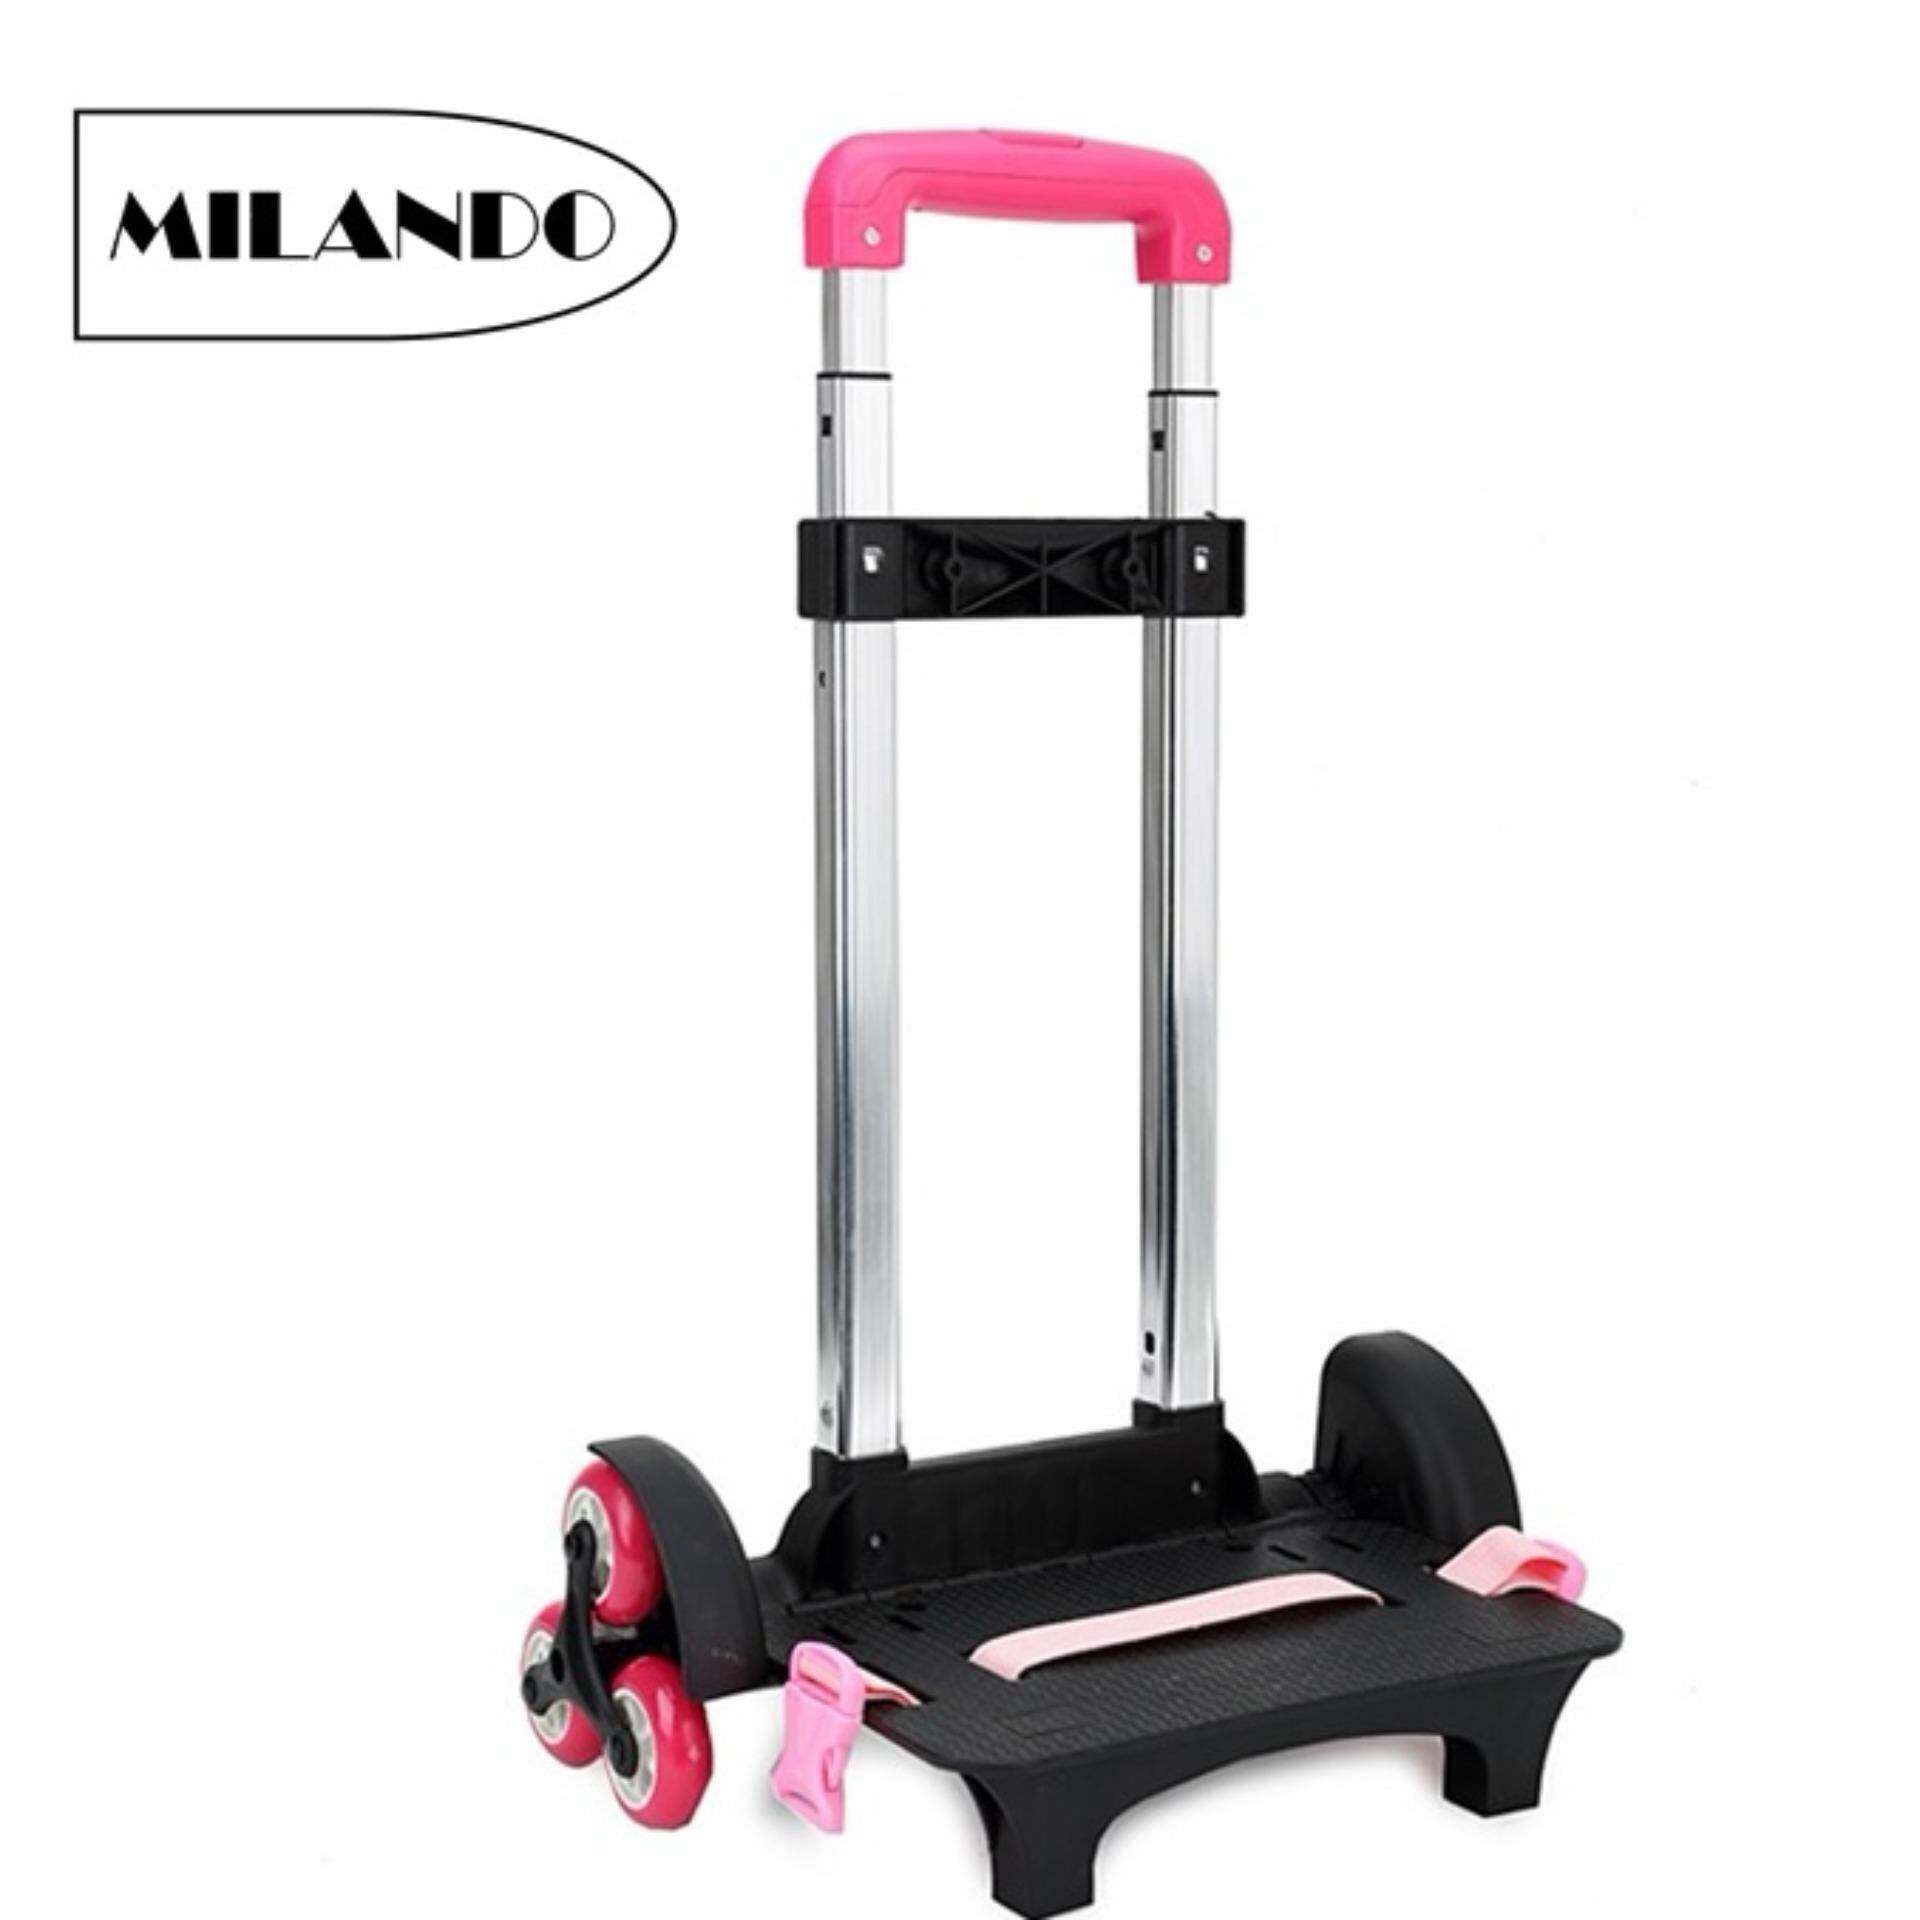 Kids Backpacks Trolley Buy At Best Price In Oops Stary Back Pack Get Free Easy Click Ladybird 6 Wheel For School Bag Staircase Stair Backpack Hand Aluminium Alloy Folding Kid